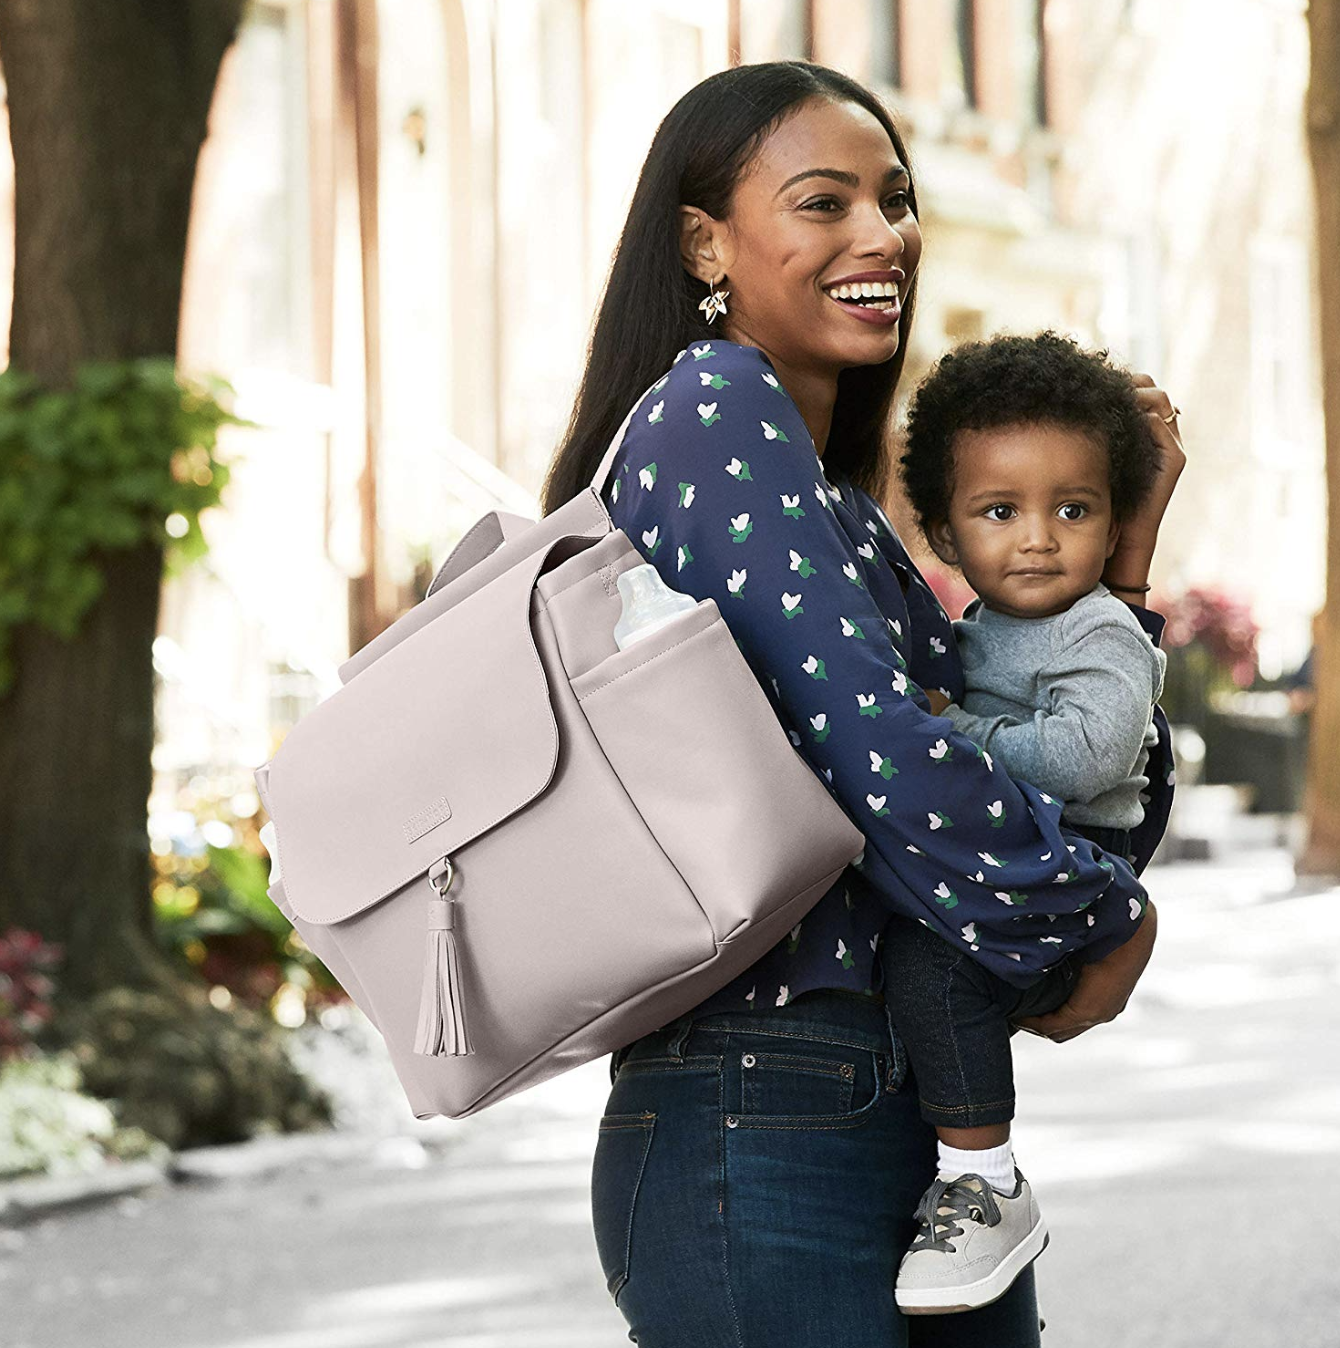 94bc70ff589 15 stylish diaper bags that don't look like diaper bags - Motherly